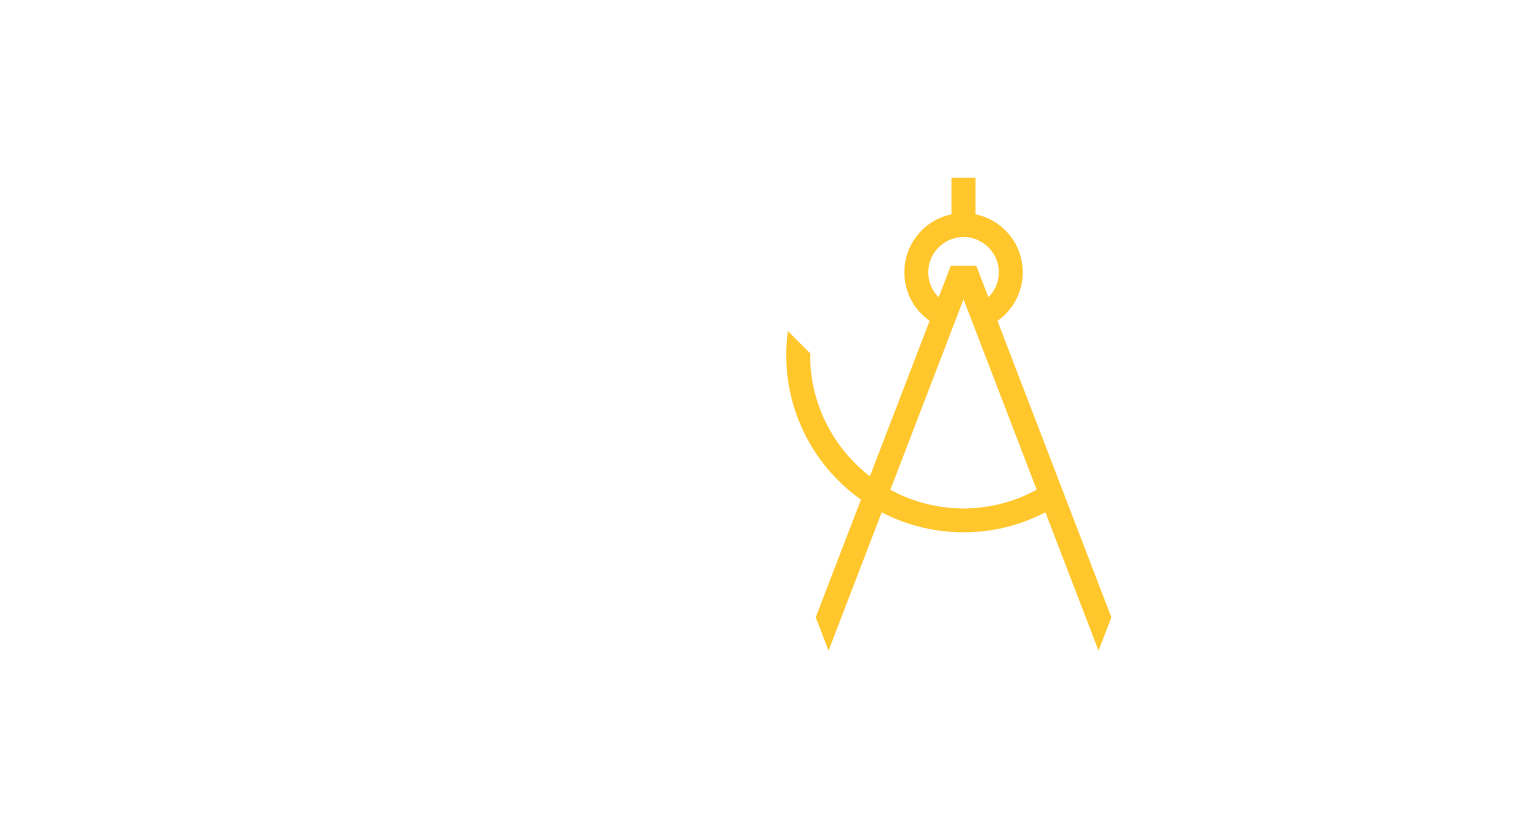 Atlas The Restaurant